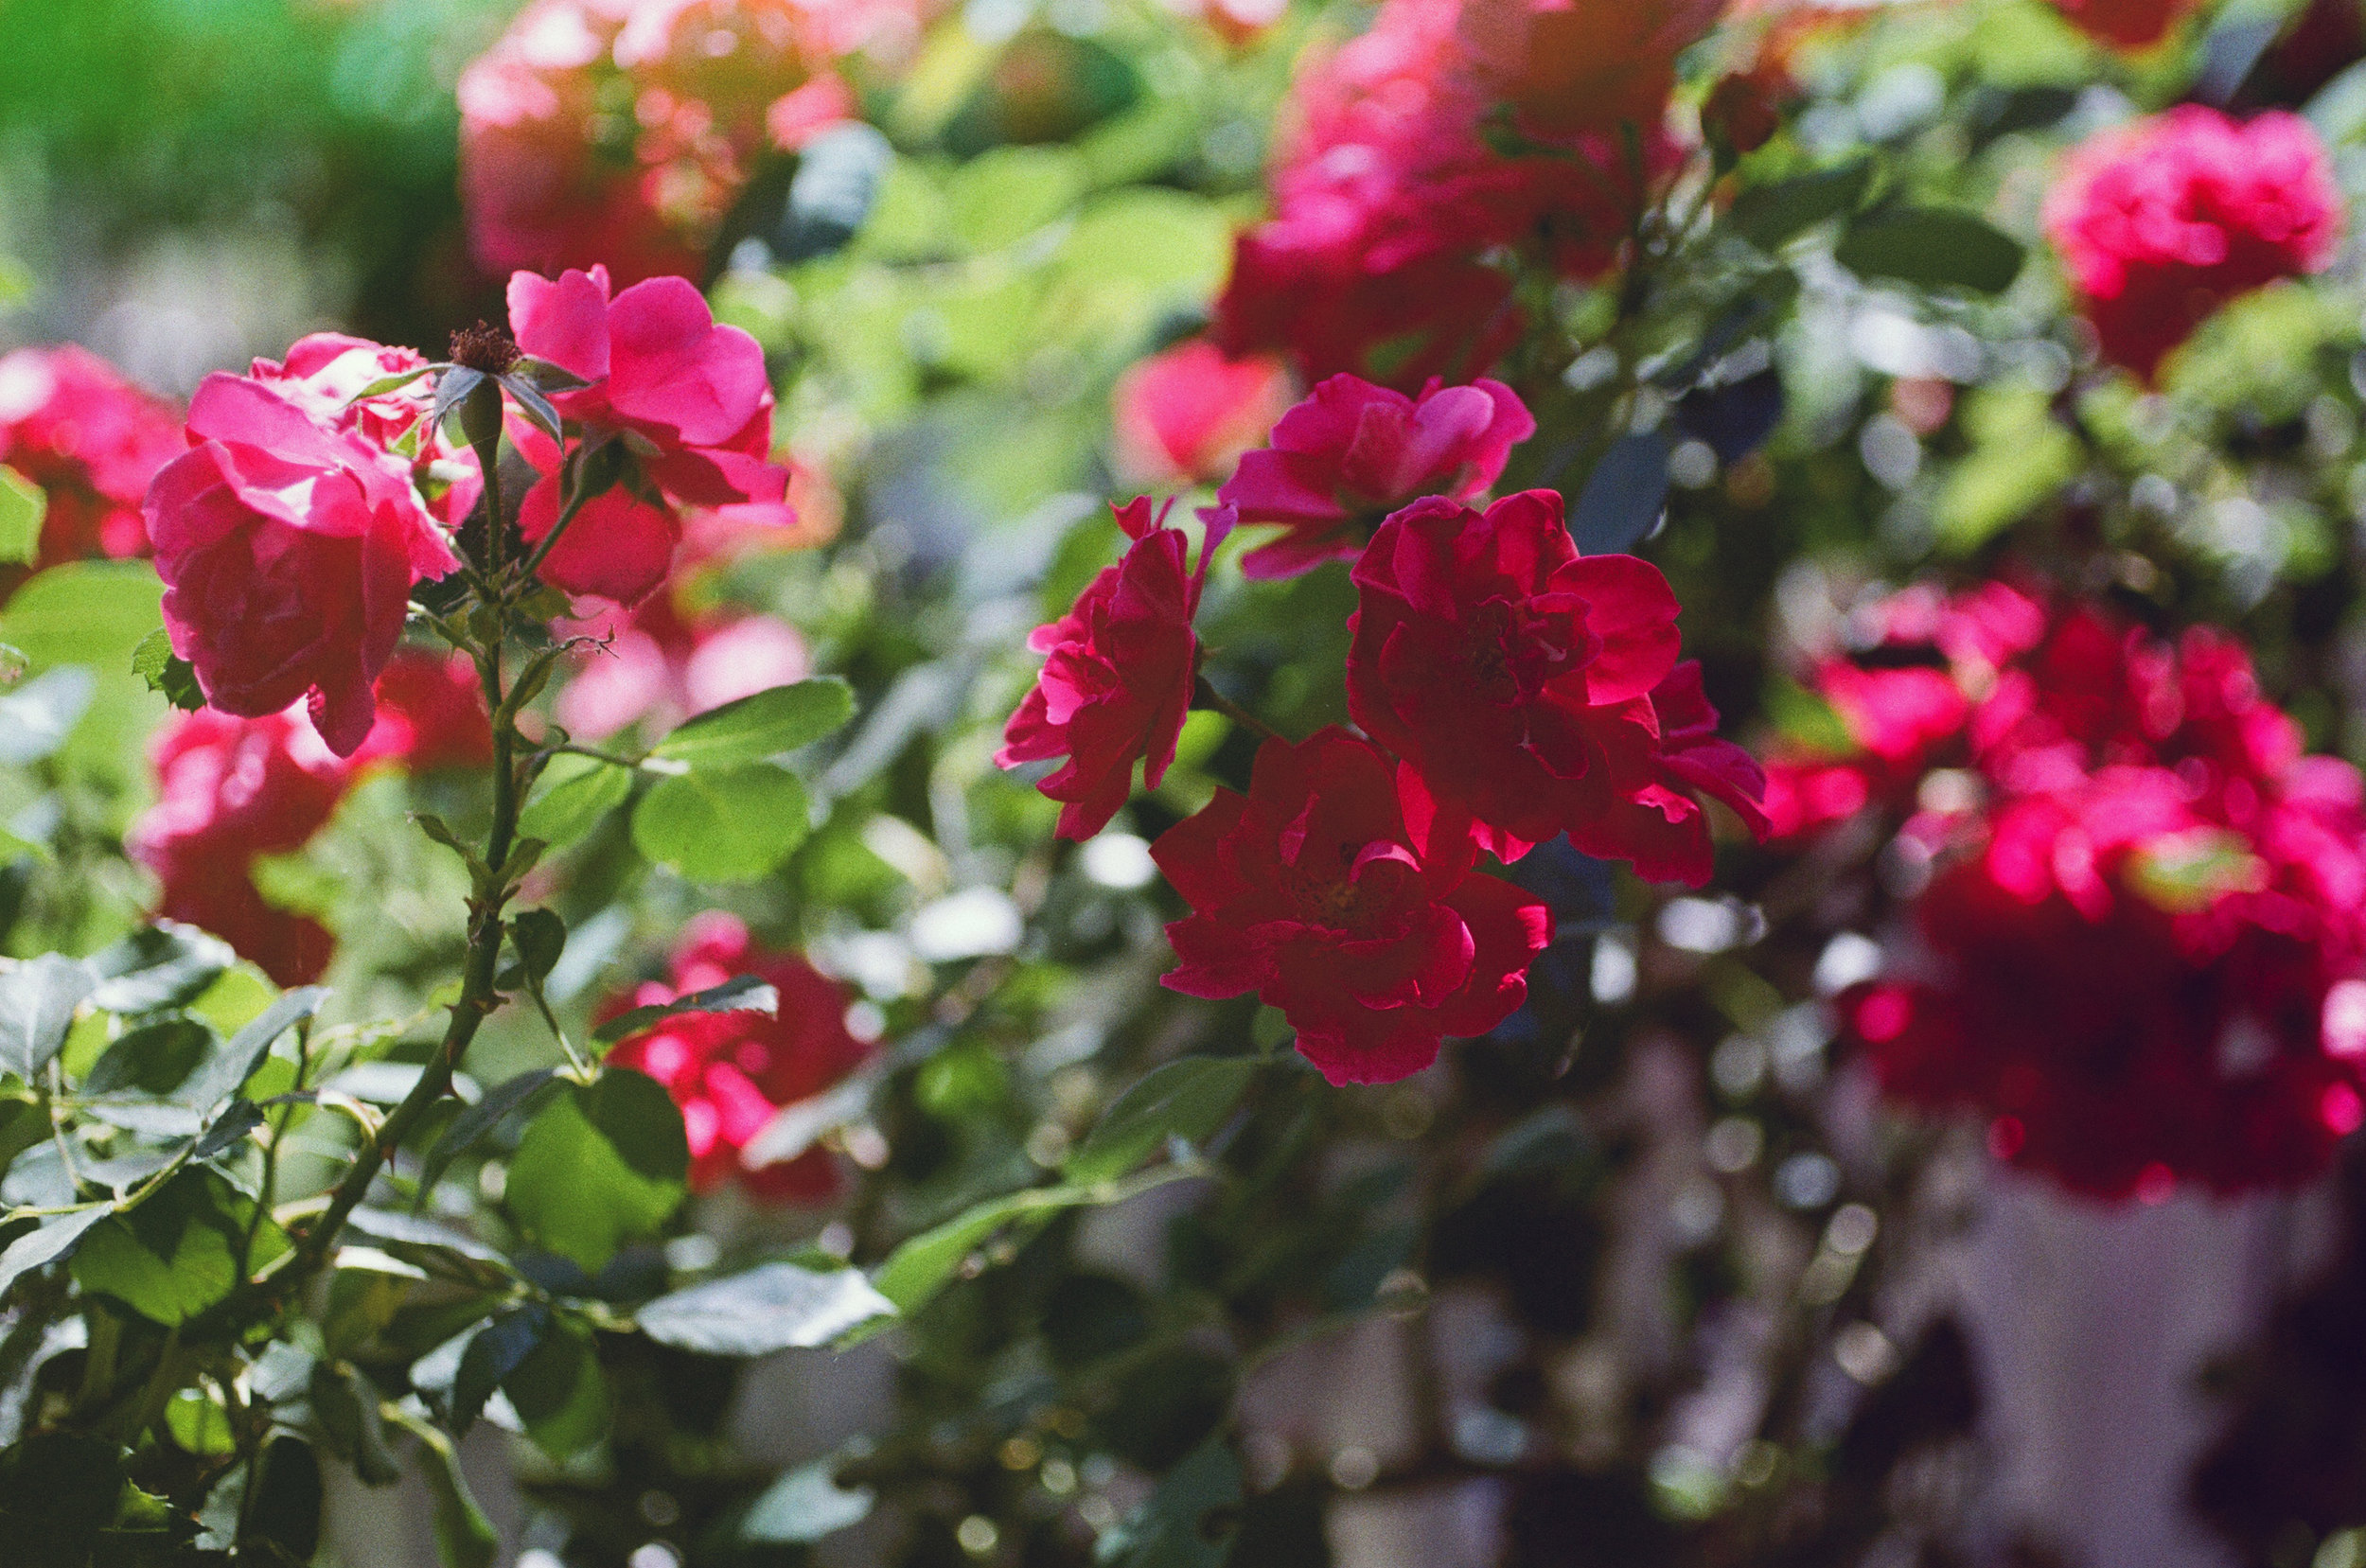 flowers-film-kodak-photography-revlog